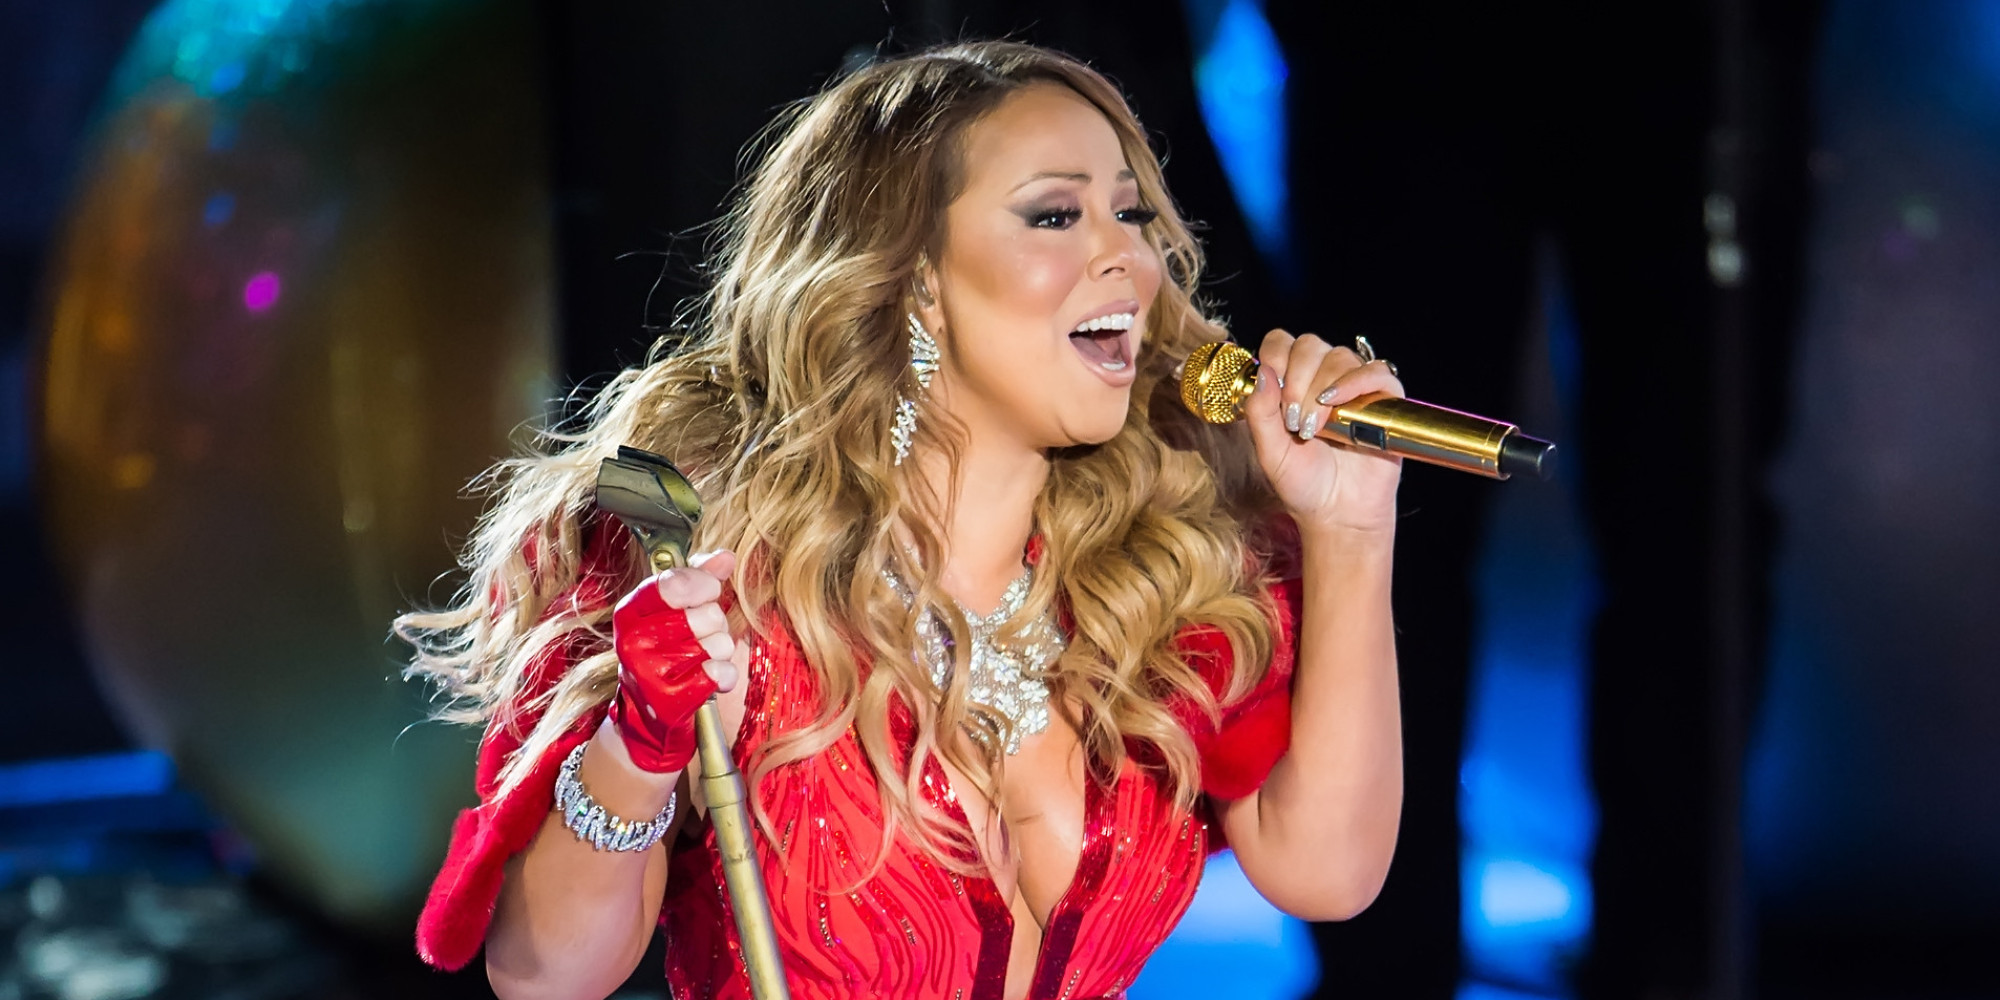 Mariah Carey Struggles Through 'All I Want For Christmas' | HuffPost